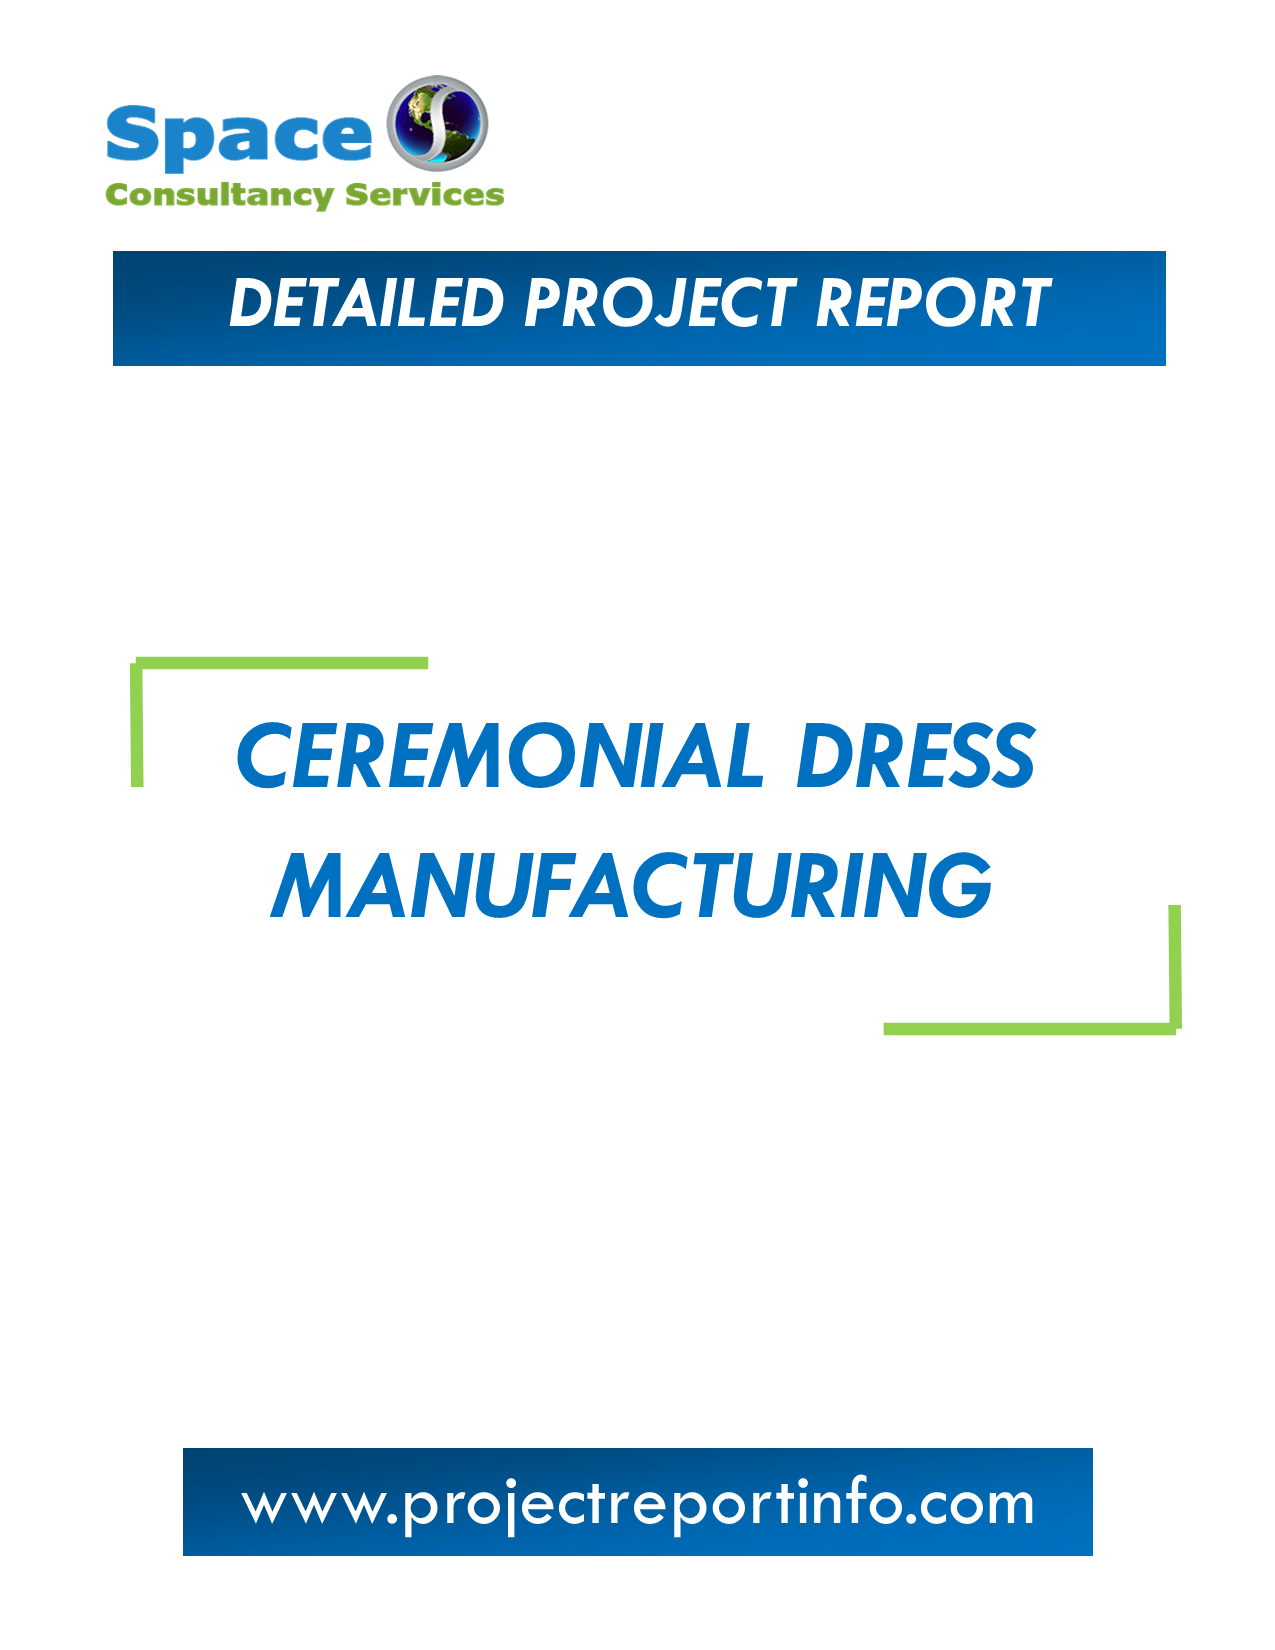 Project Report on Ceremonial Dress Manufacturing